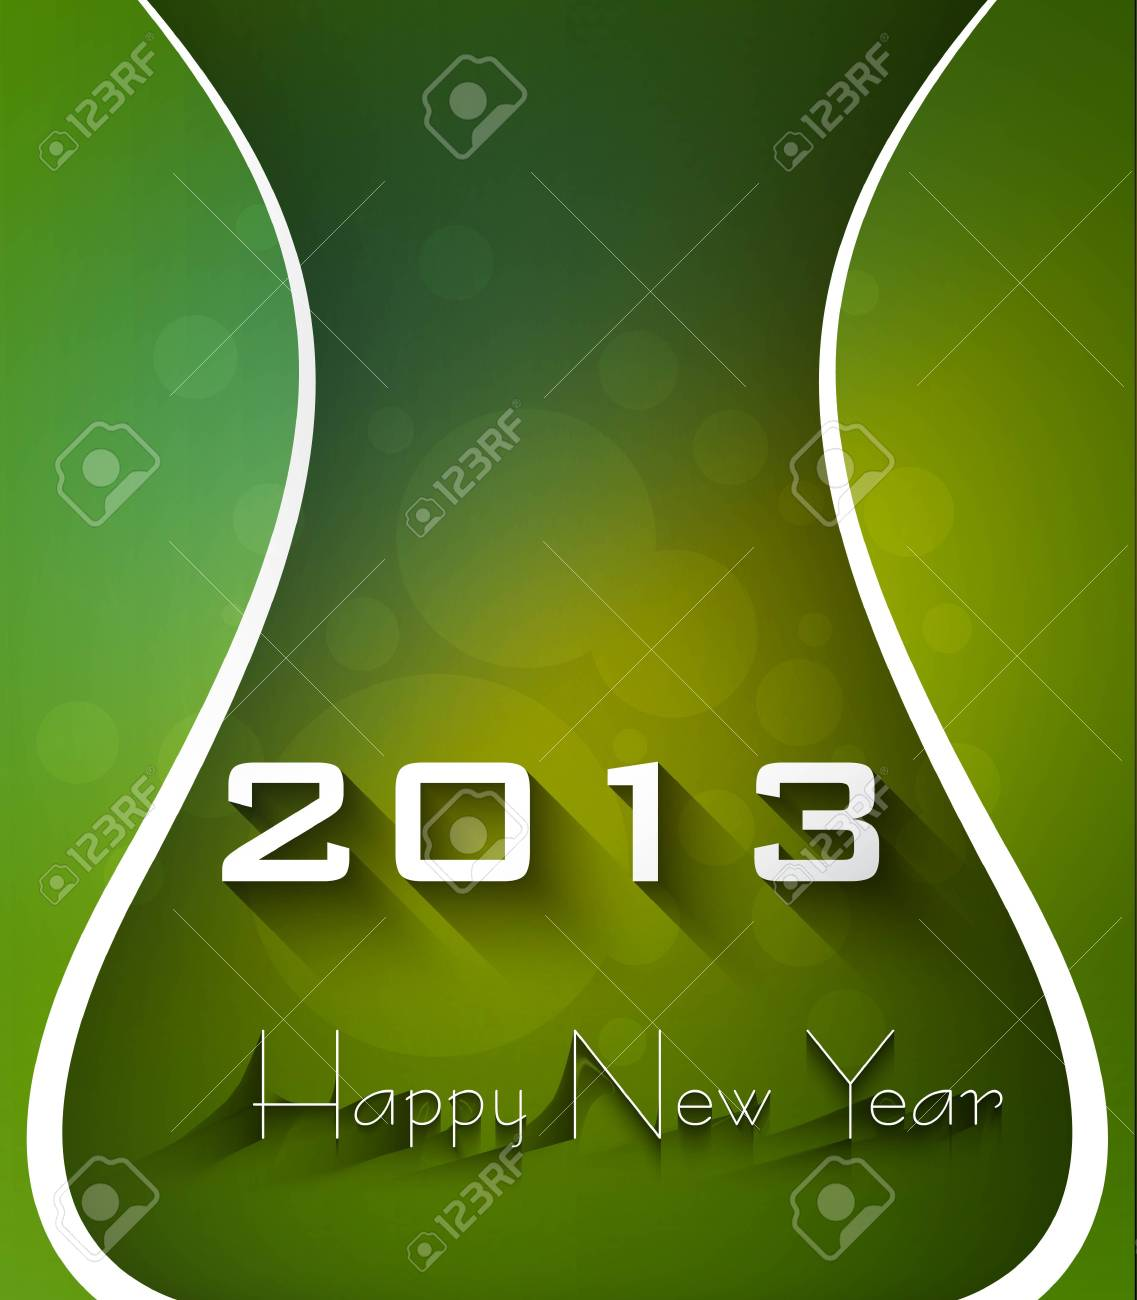 New year shiny stylish 2013 bright green wave colorful vector Stock Vector - 18172883